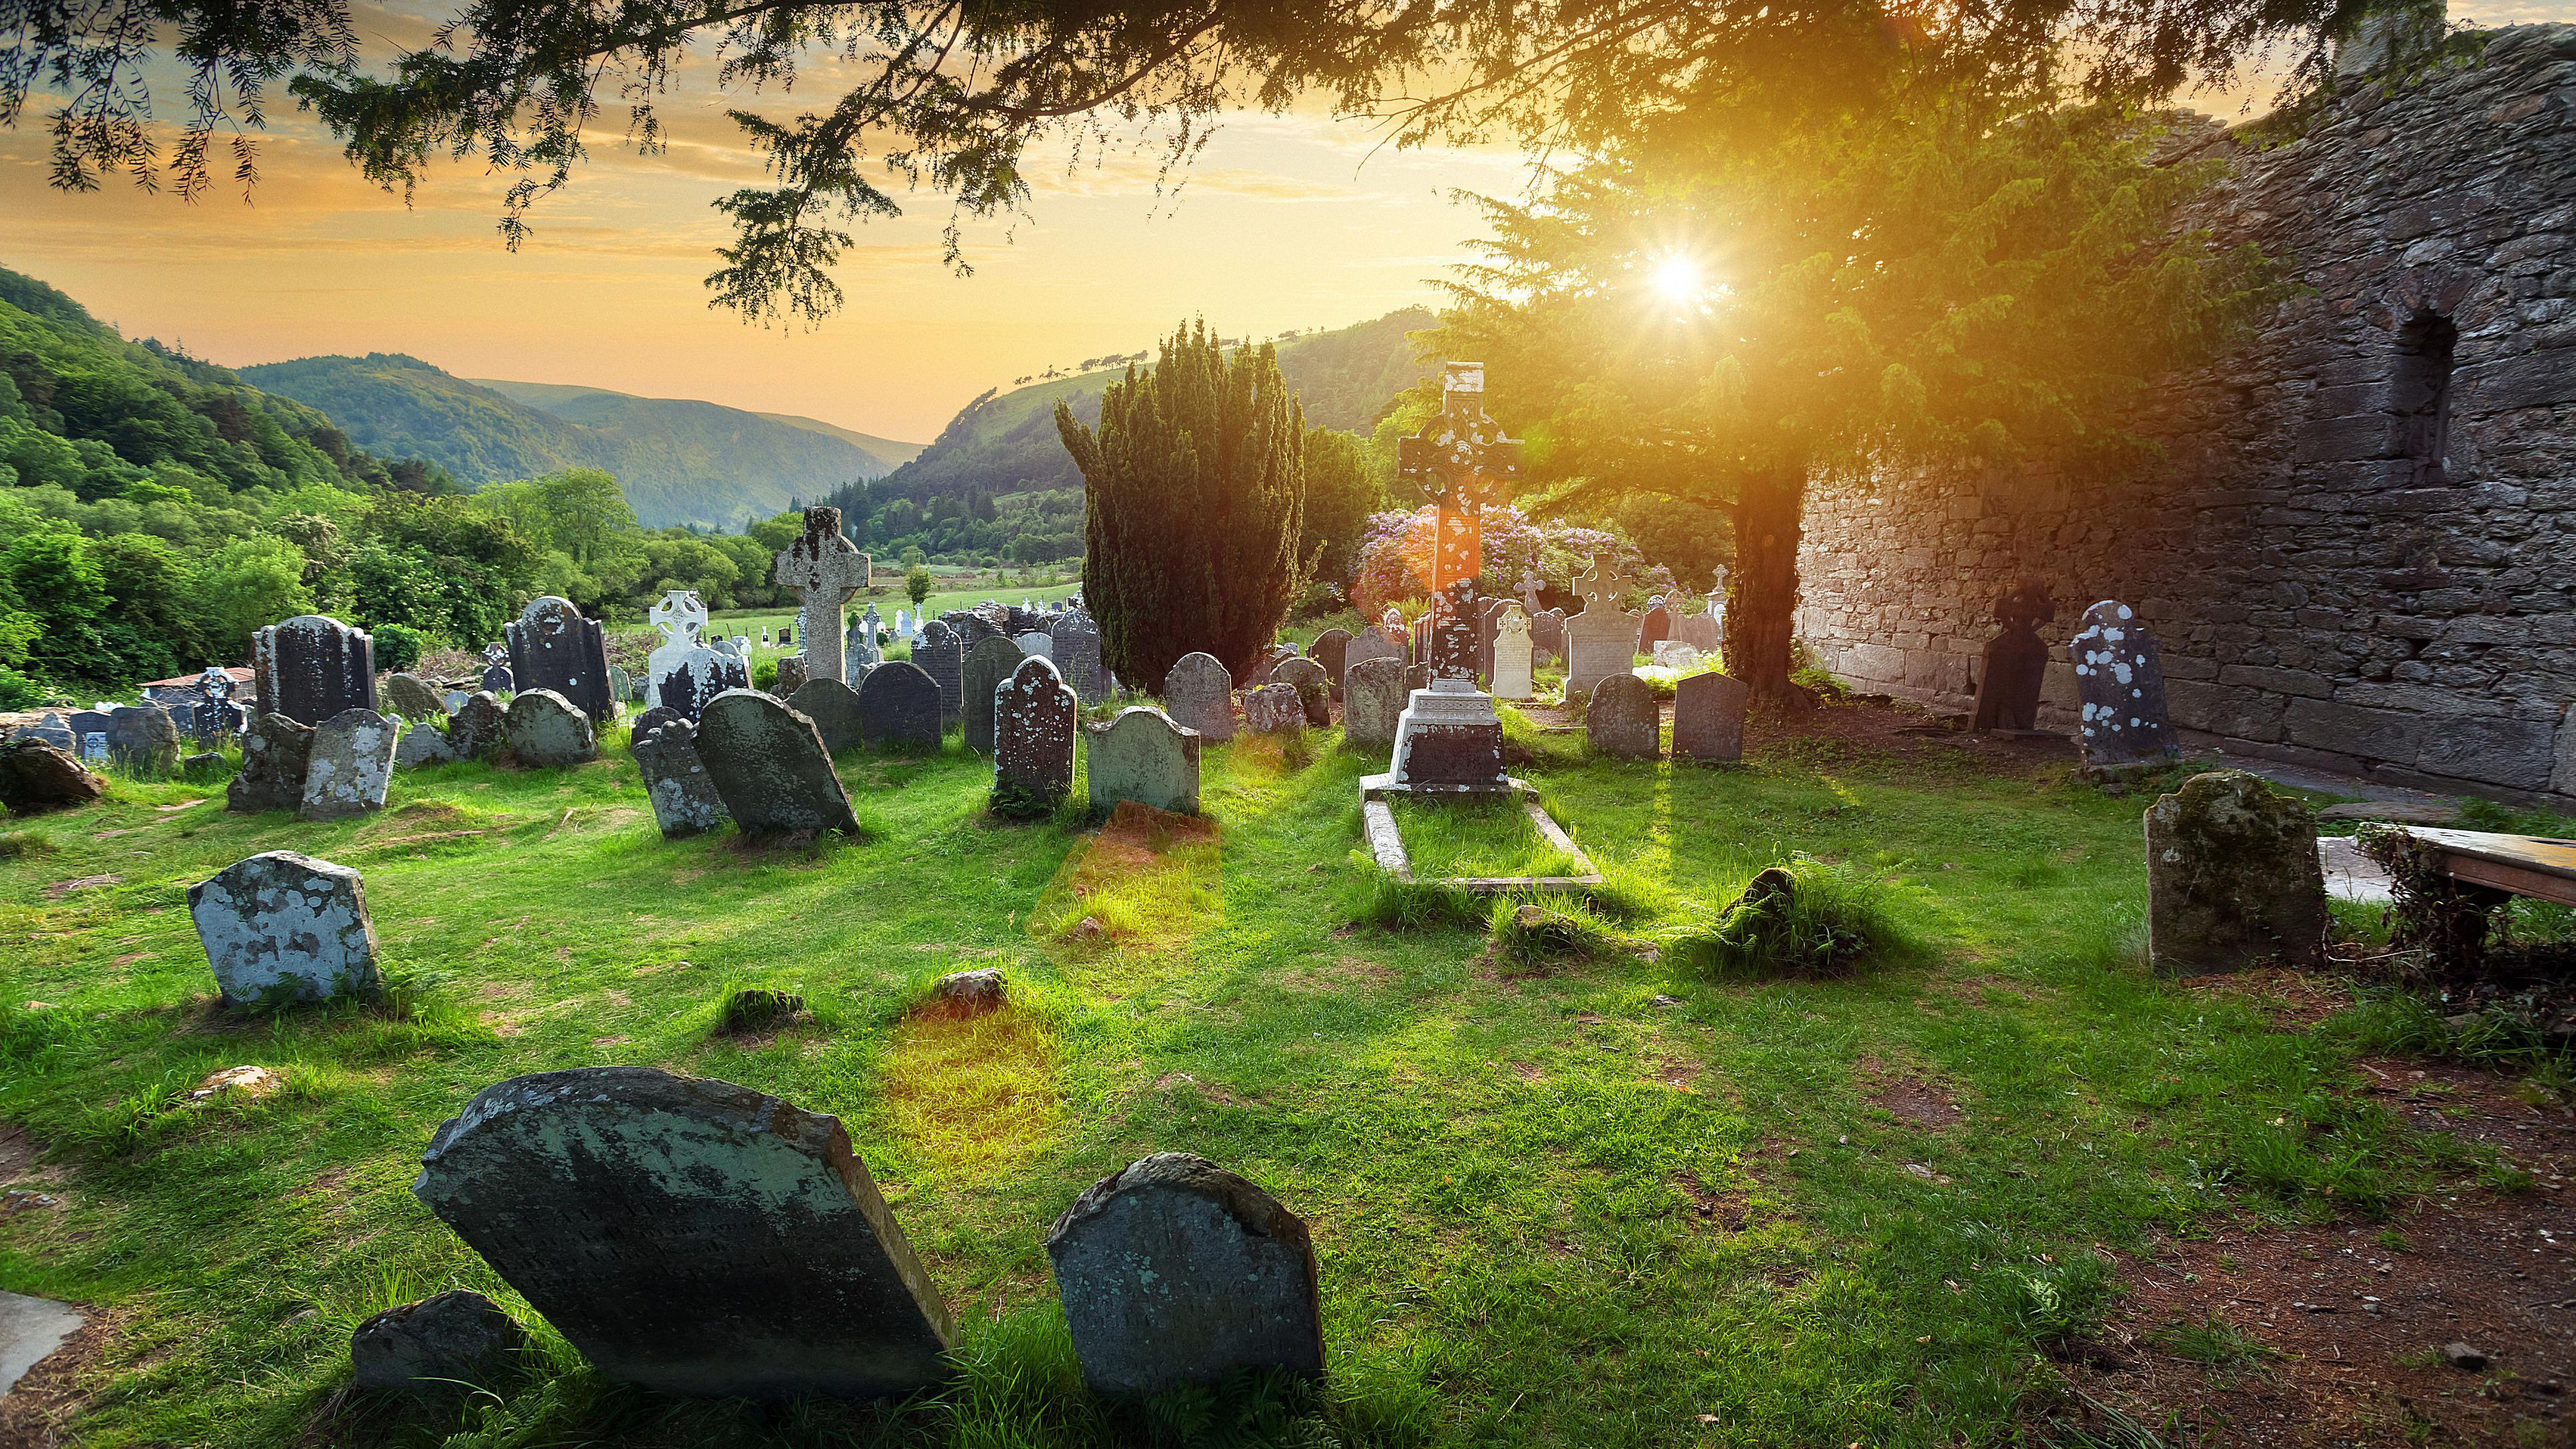 the-cemetery-at-the-glendalough-monastic-site-in-country-wicklow-ireland-512480108-58b9cbff3df78c353c37b868.jpg